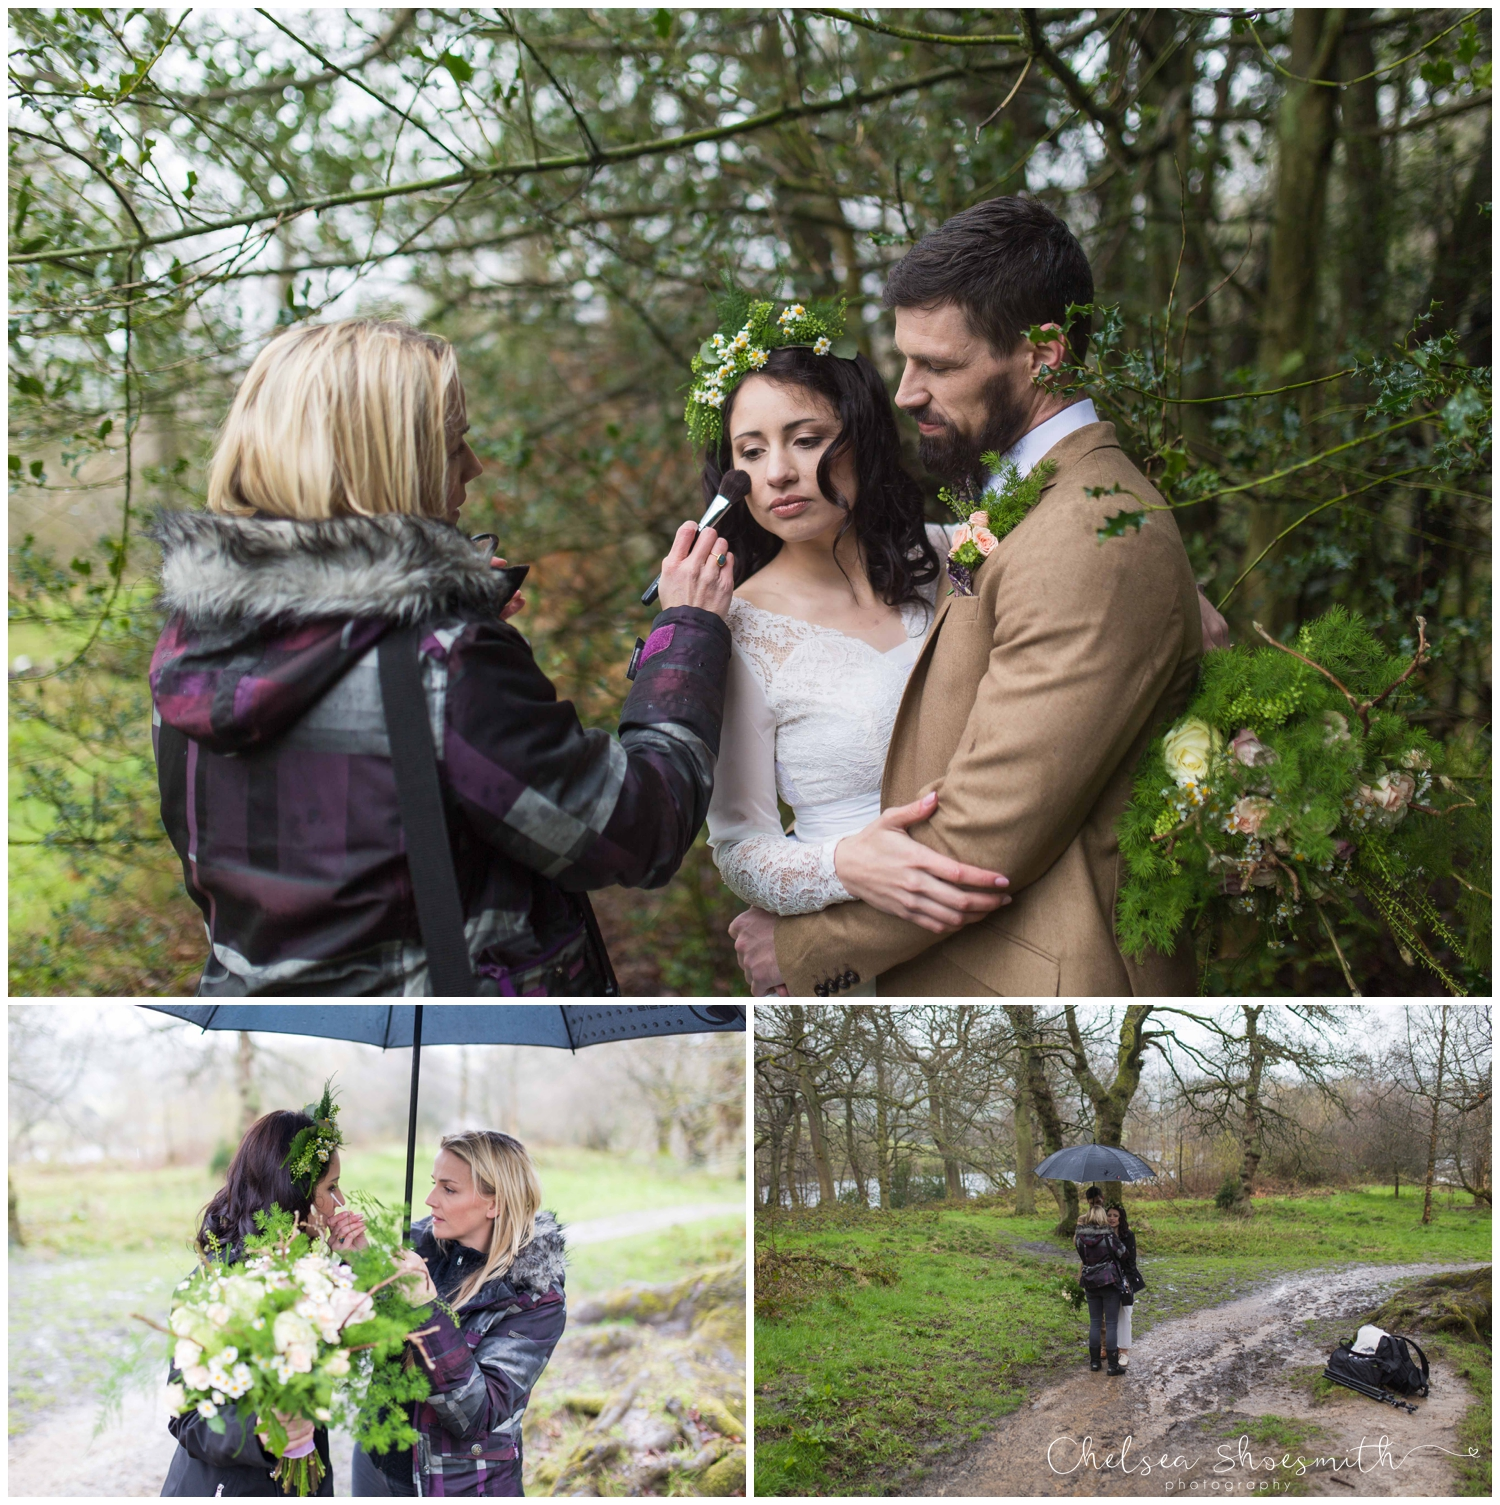 (86 of 183) Deya & Craig Bridal Styled Shoot Teggsnose country park macclesfield cheshire wedding photographer chelsea shoesmith photography_